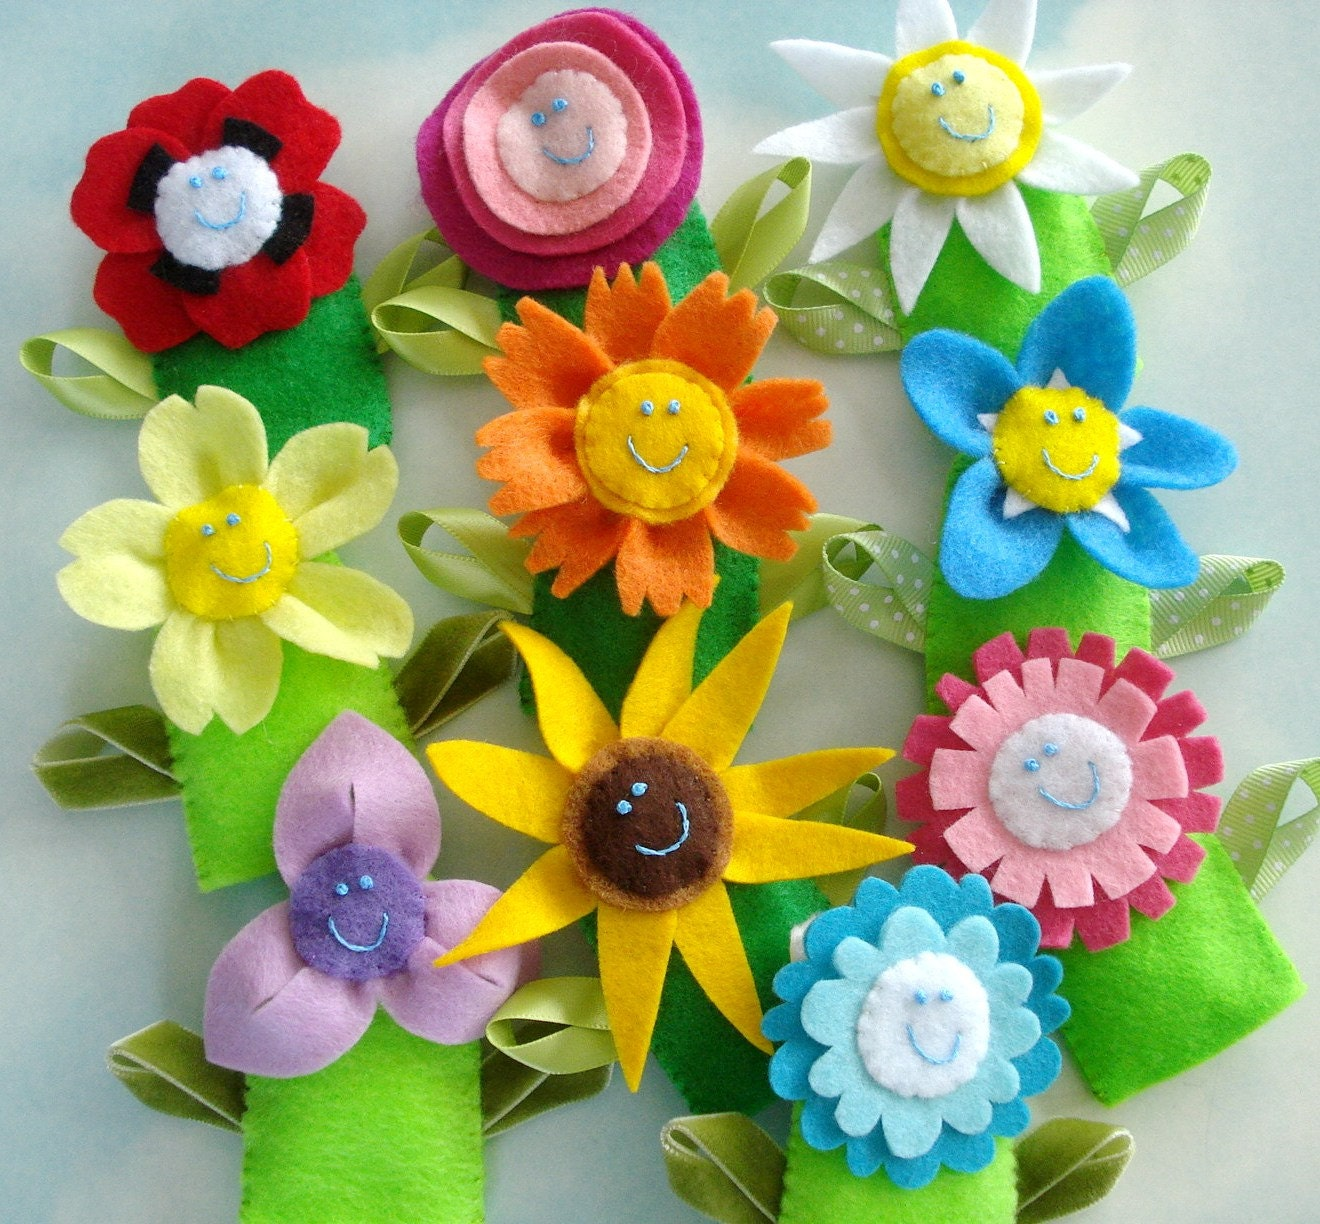 Flower Felt Finger Puppets & Hair Accessories Sewing Pattern